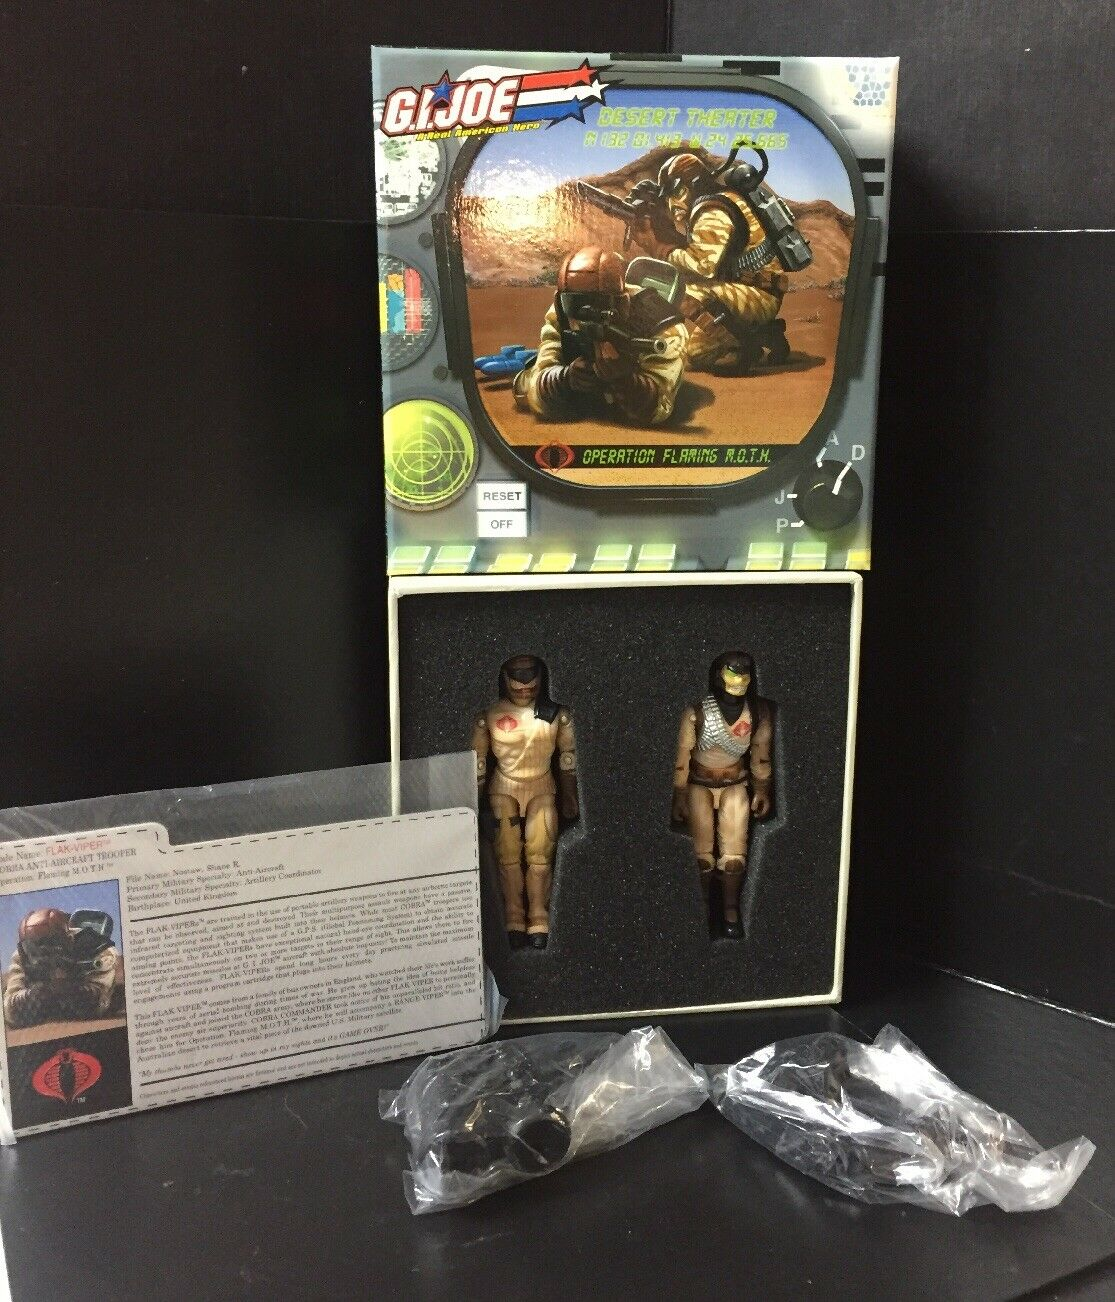 2006 Desert Theater G.I. Joe Collector's Club Flaming M.O.T.H. 2 Figure Set